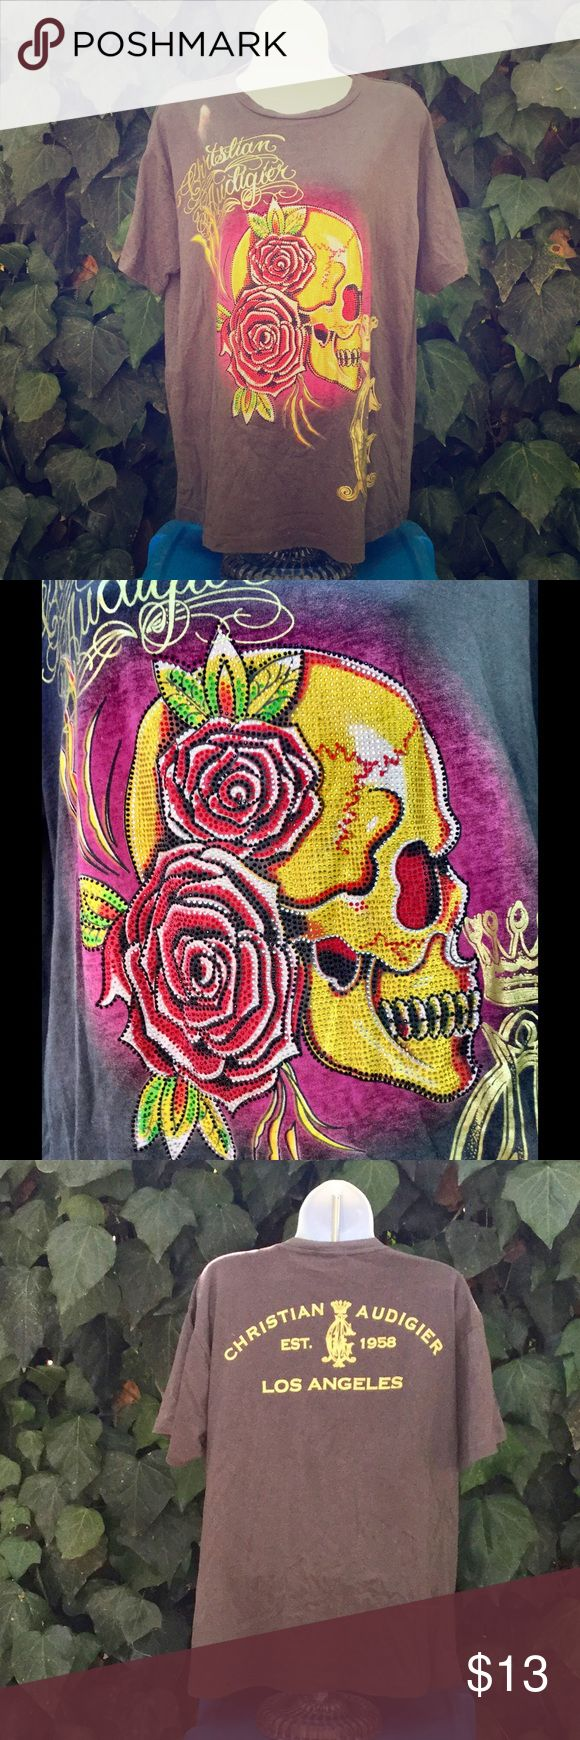 Christian Audigier Rose Skull Studded Tee Awesome crystal design! In excellent condition. Christian Audigier Tops Tees - Short Sleeve